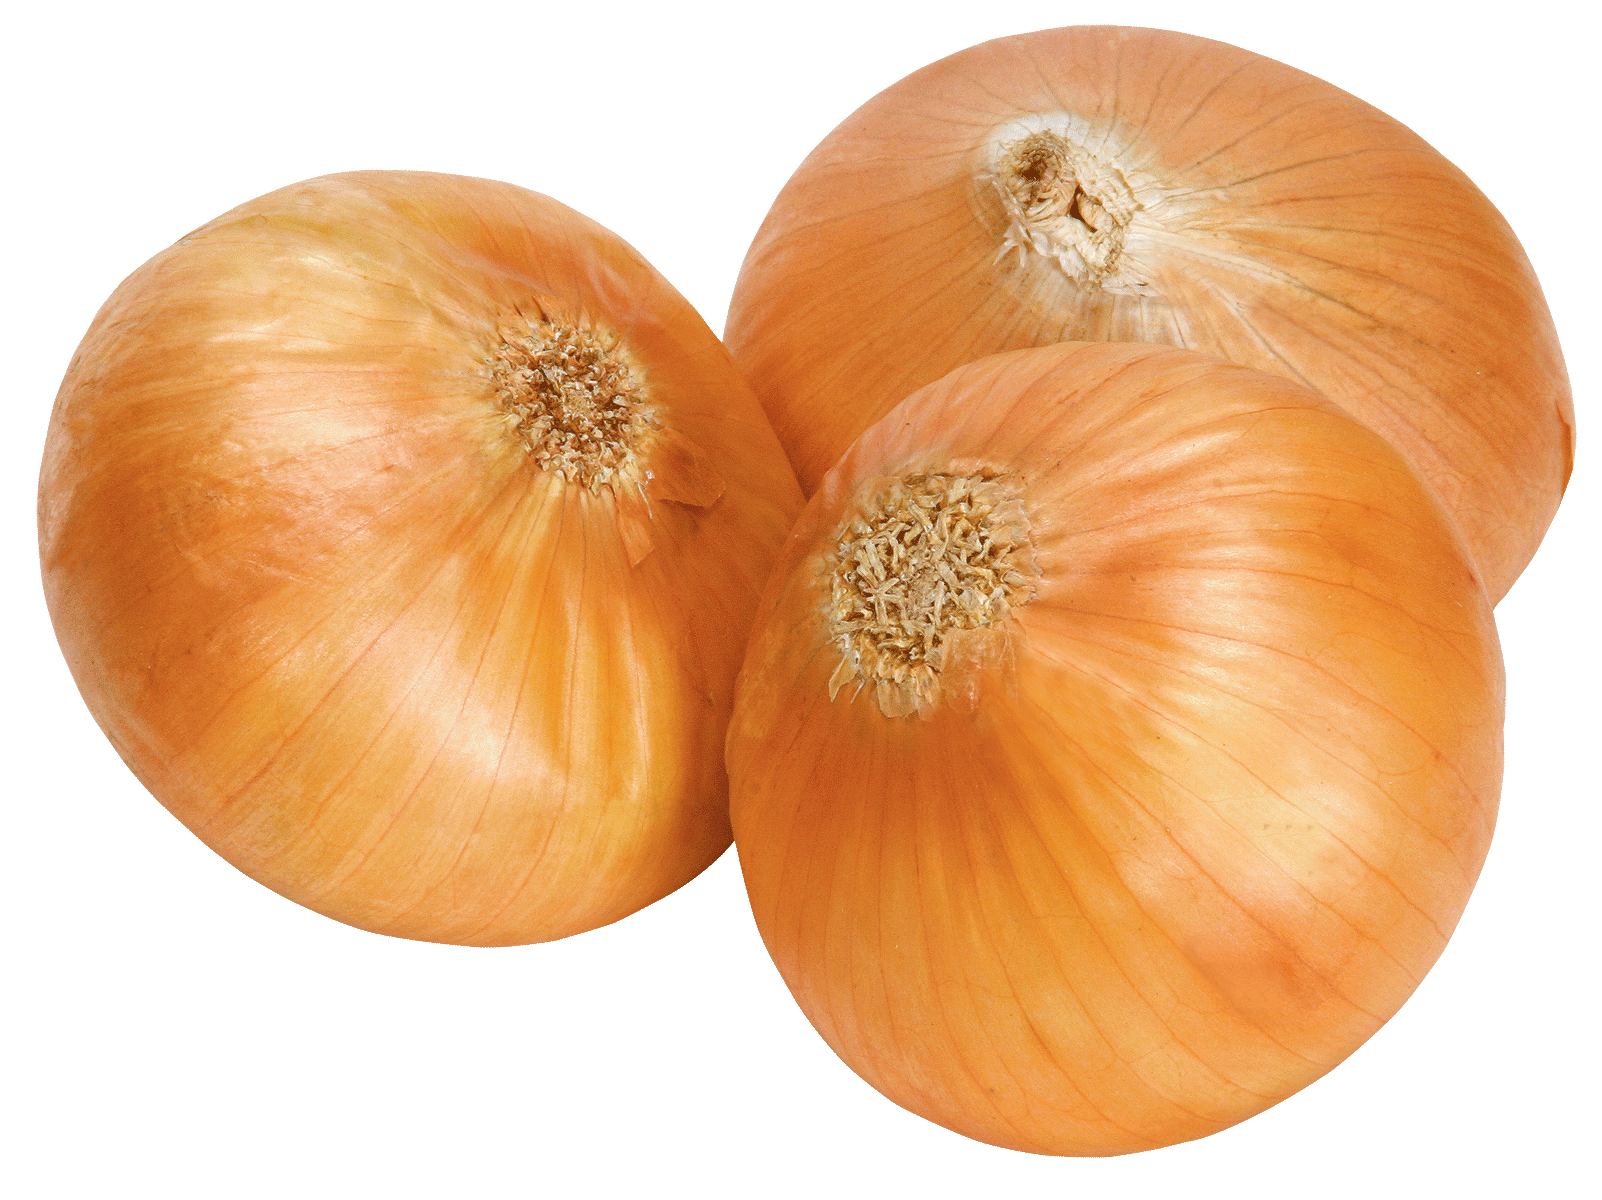 Onion PNG images, free download